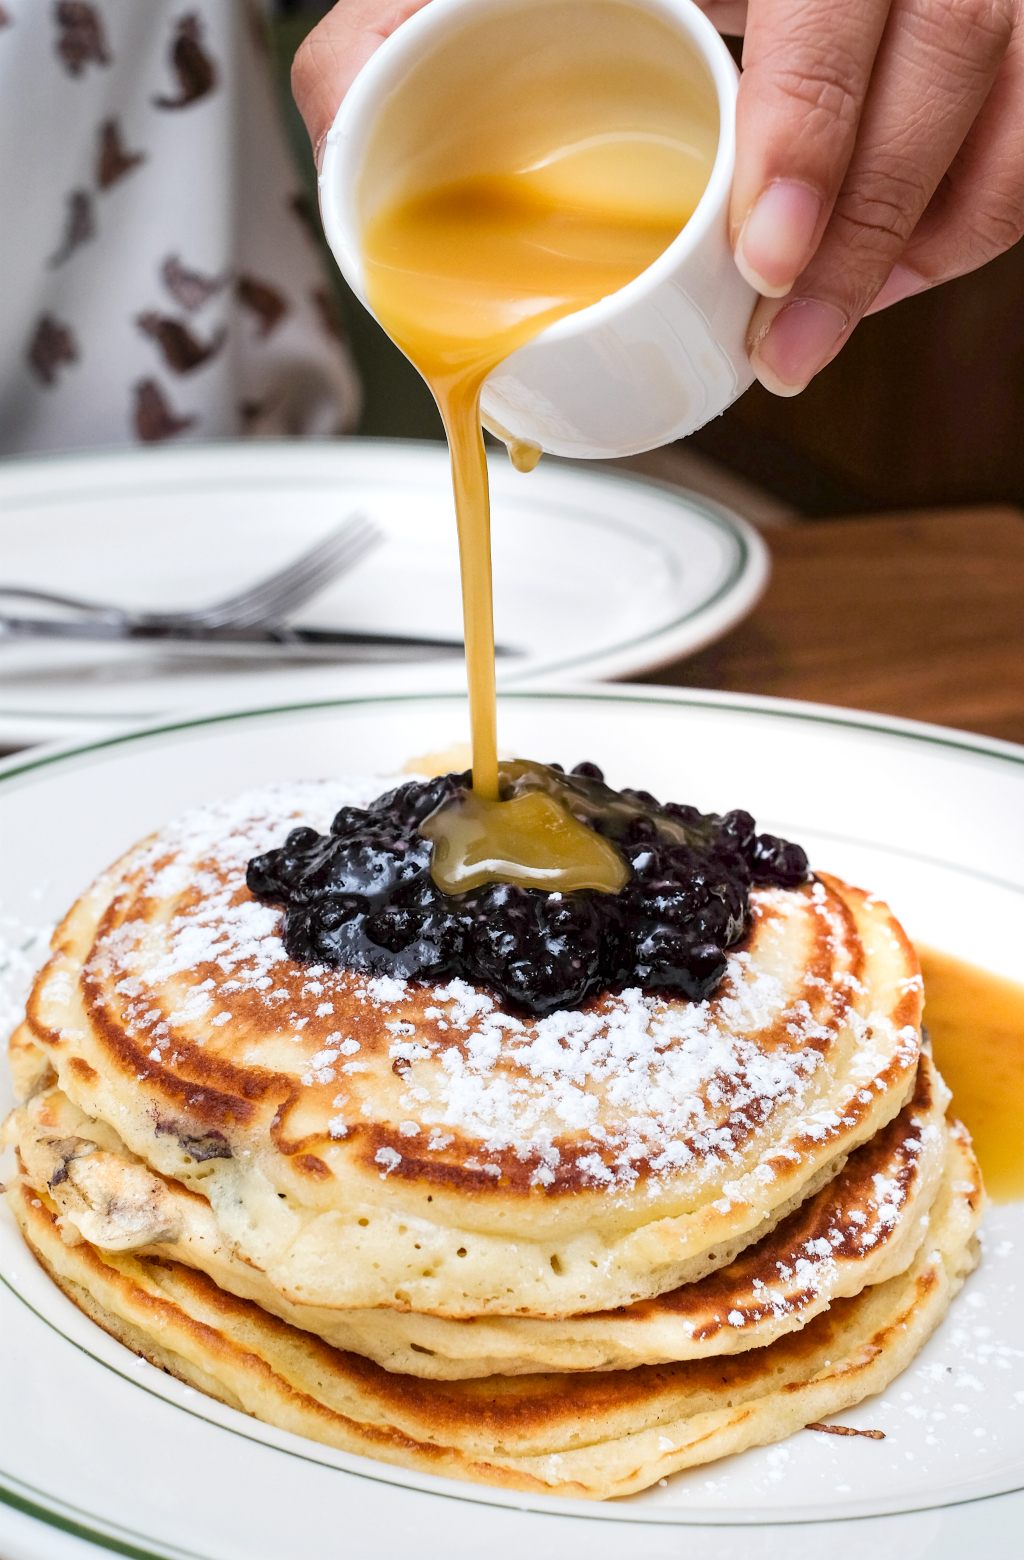 Clinton St Baking Company's Famouse Maine Blueberry Pancakes with Maple Butter Sauce